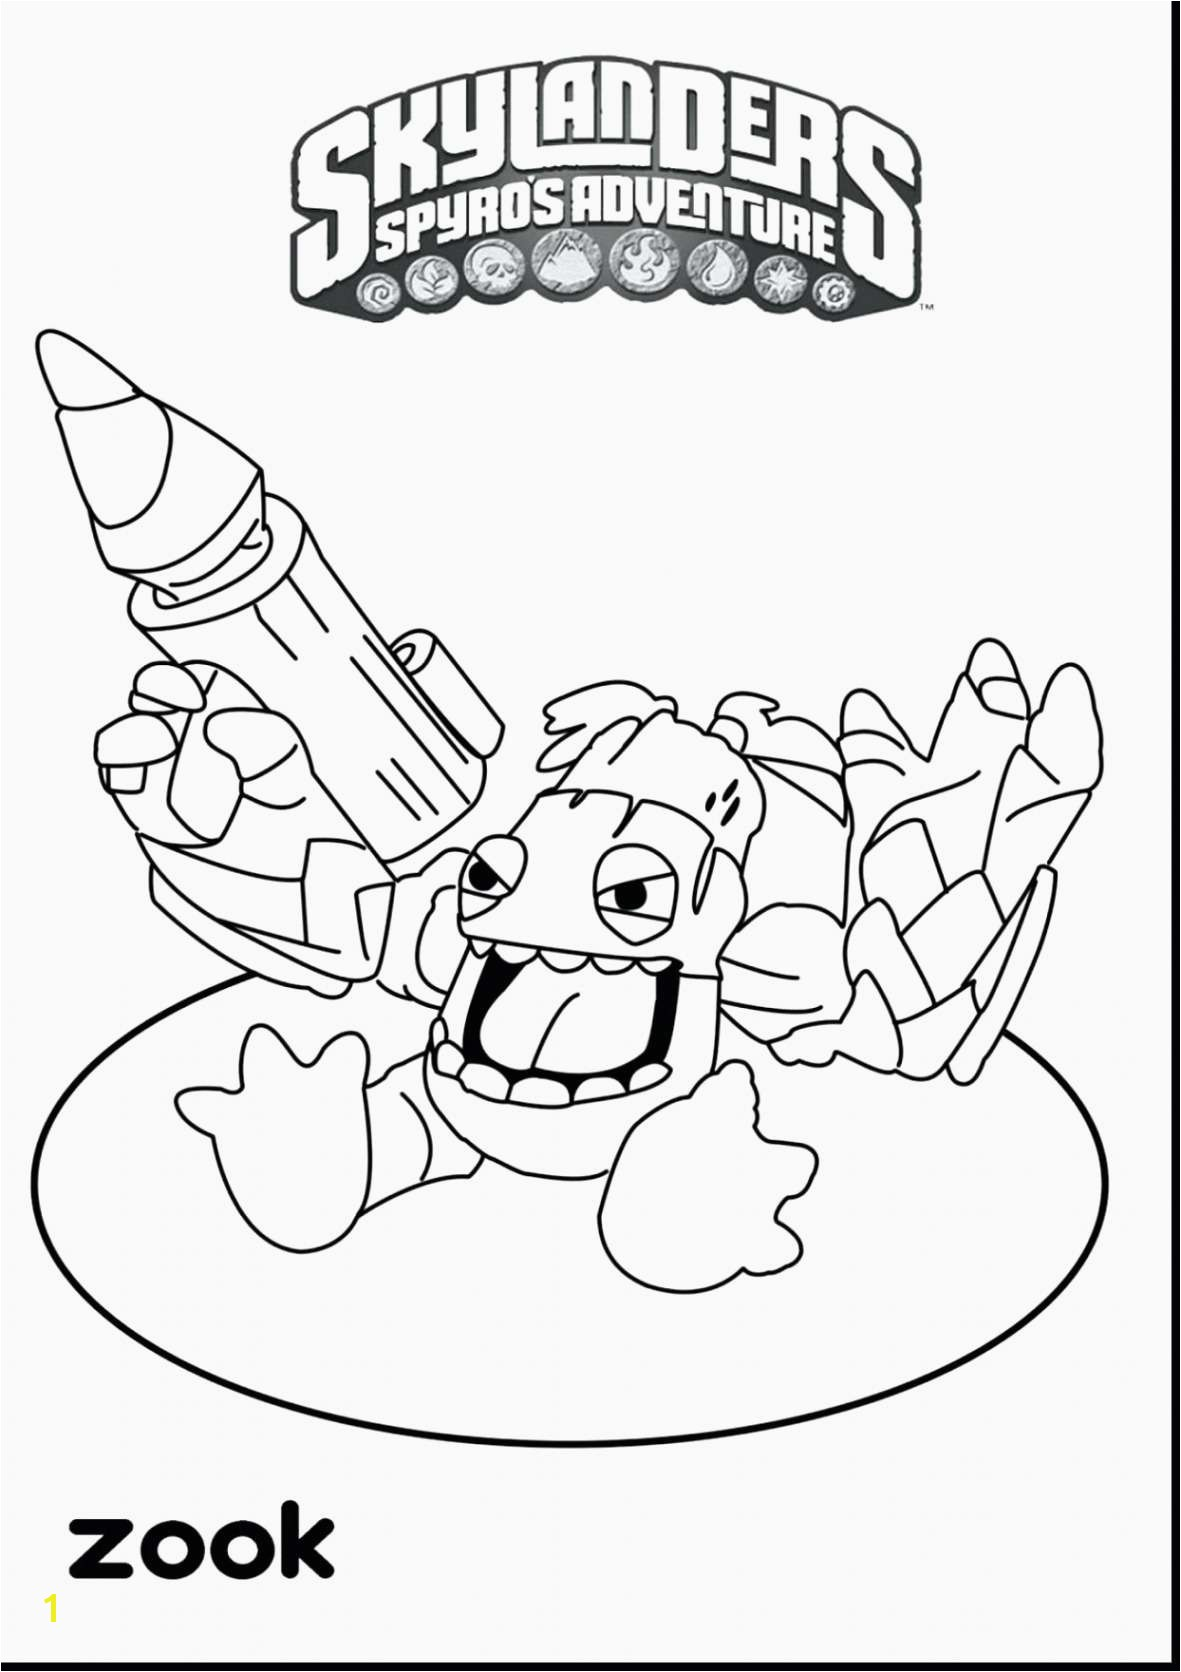 Star Christmas Coloring Page 41 Free Printable Coloring Pages Grinch Stole Christmas